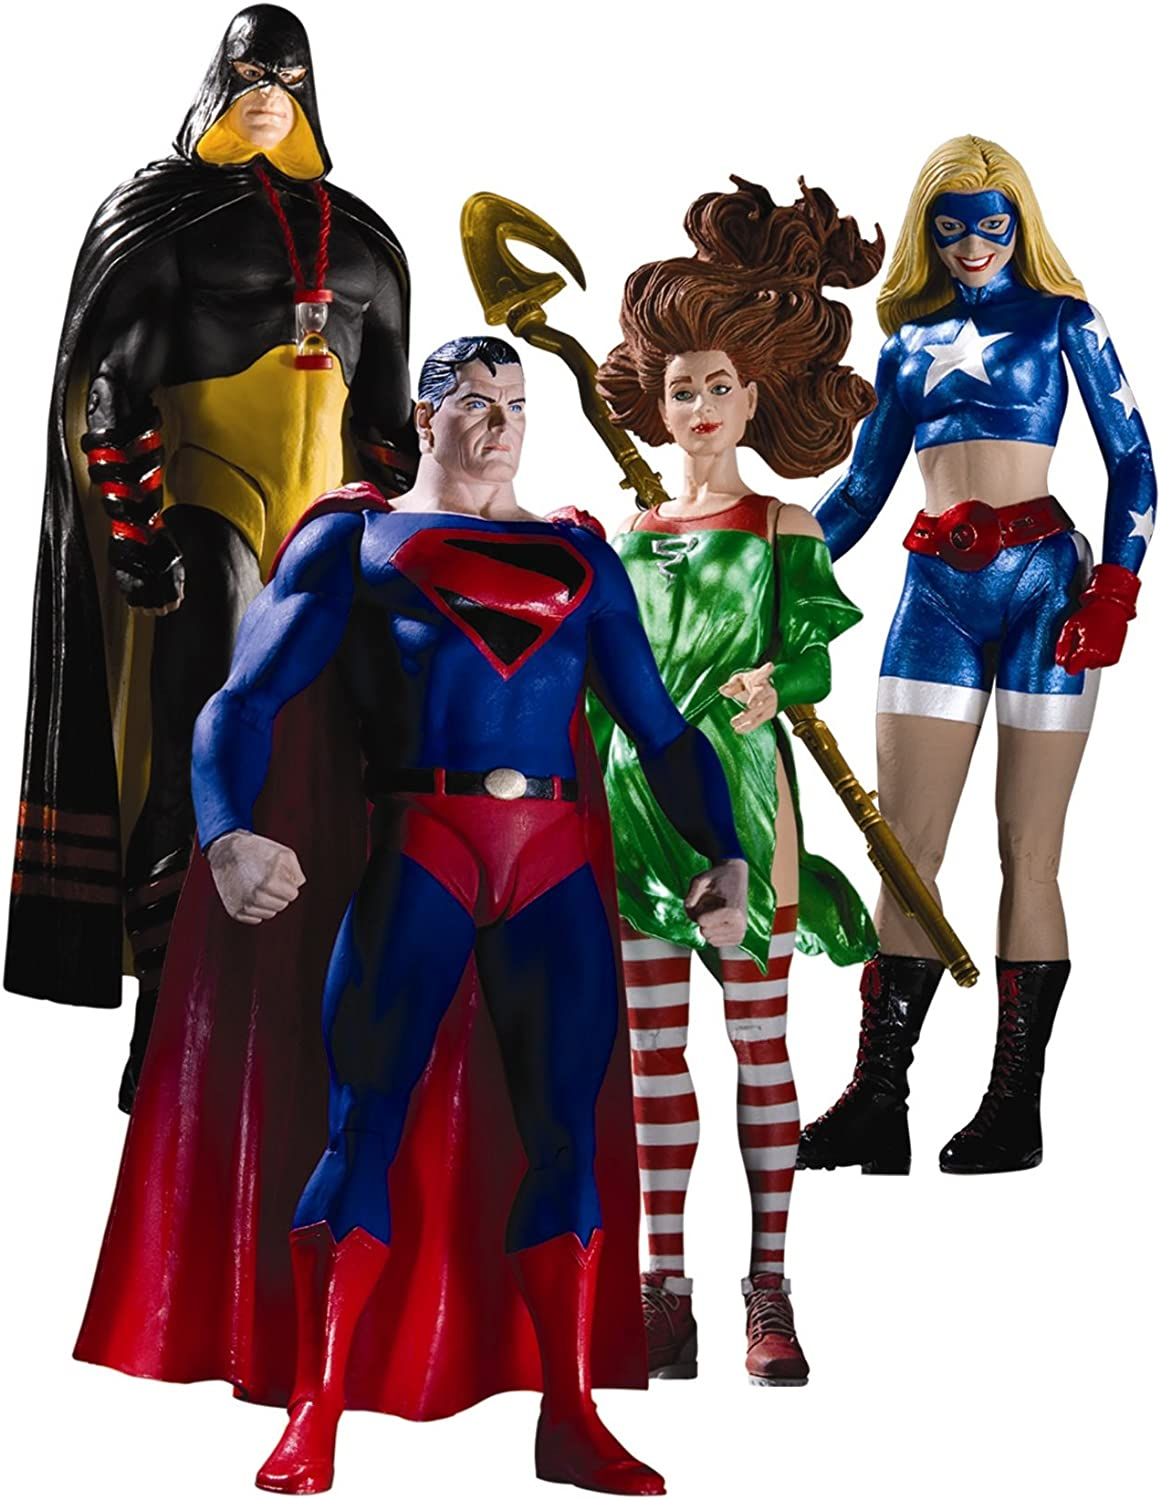 DC Comics Justice Society of America  Series 2 Action Figure Set